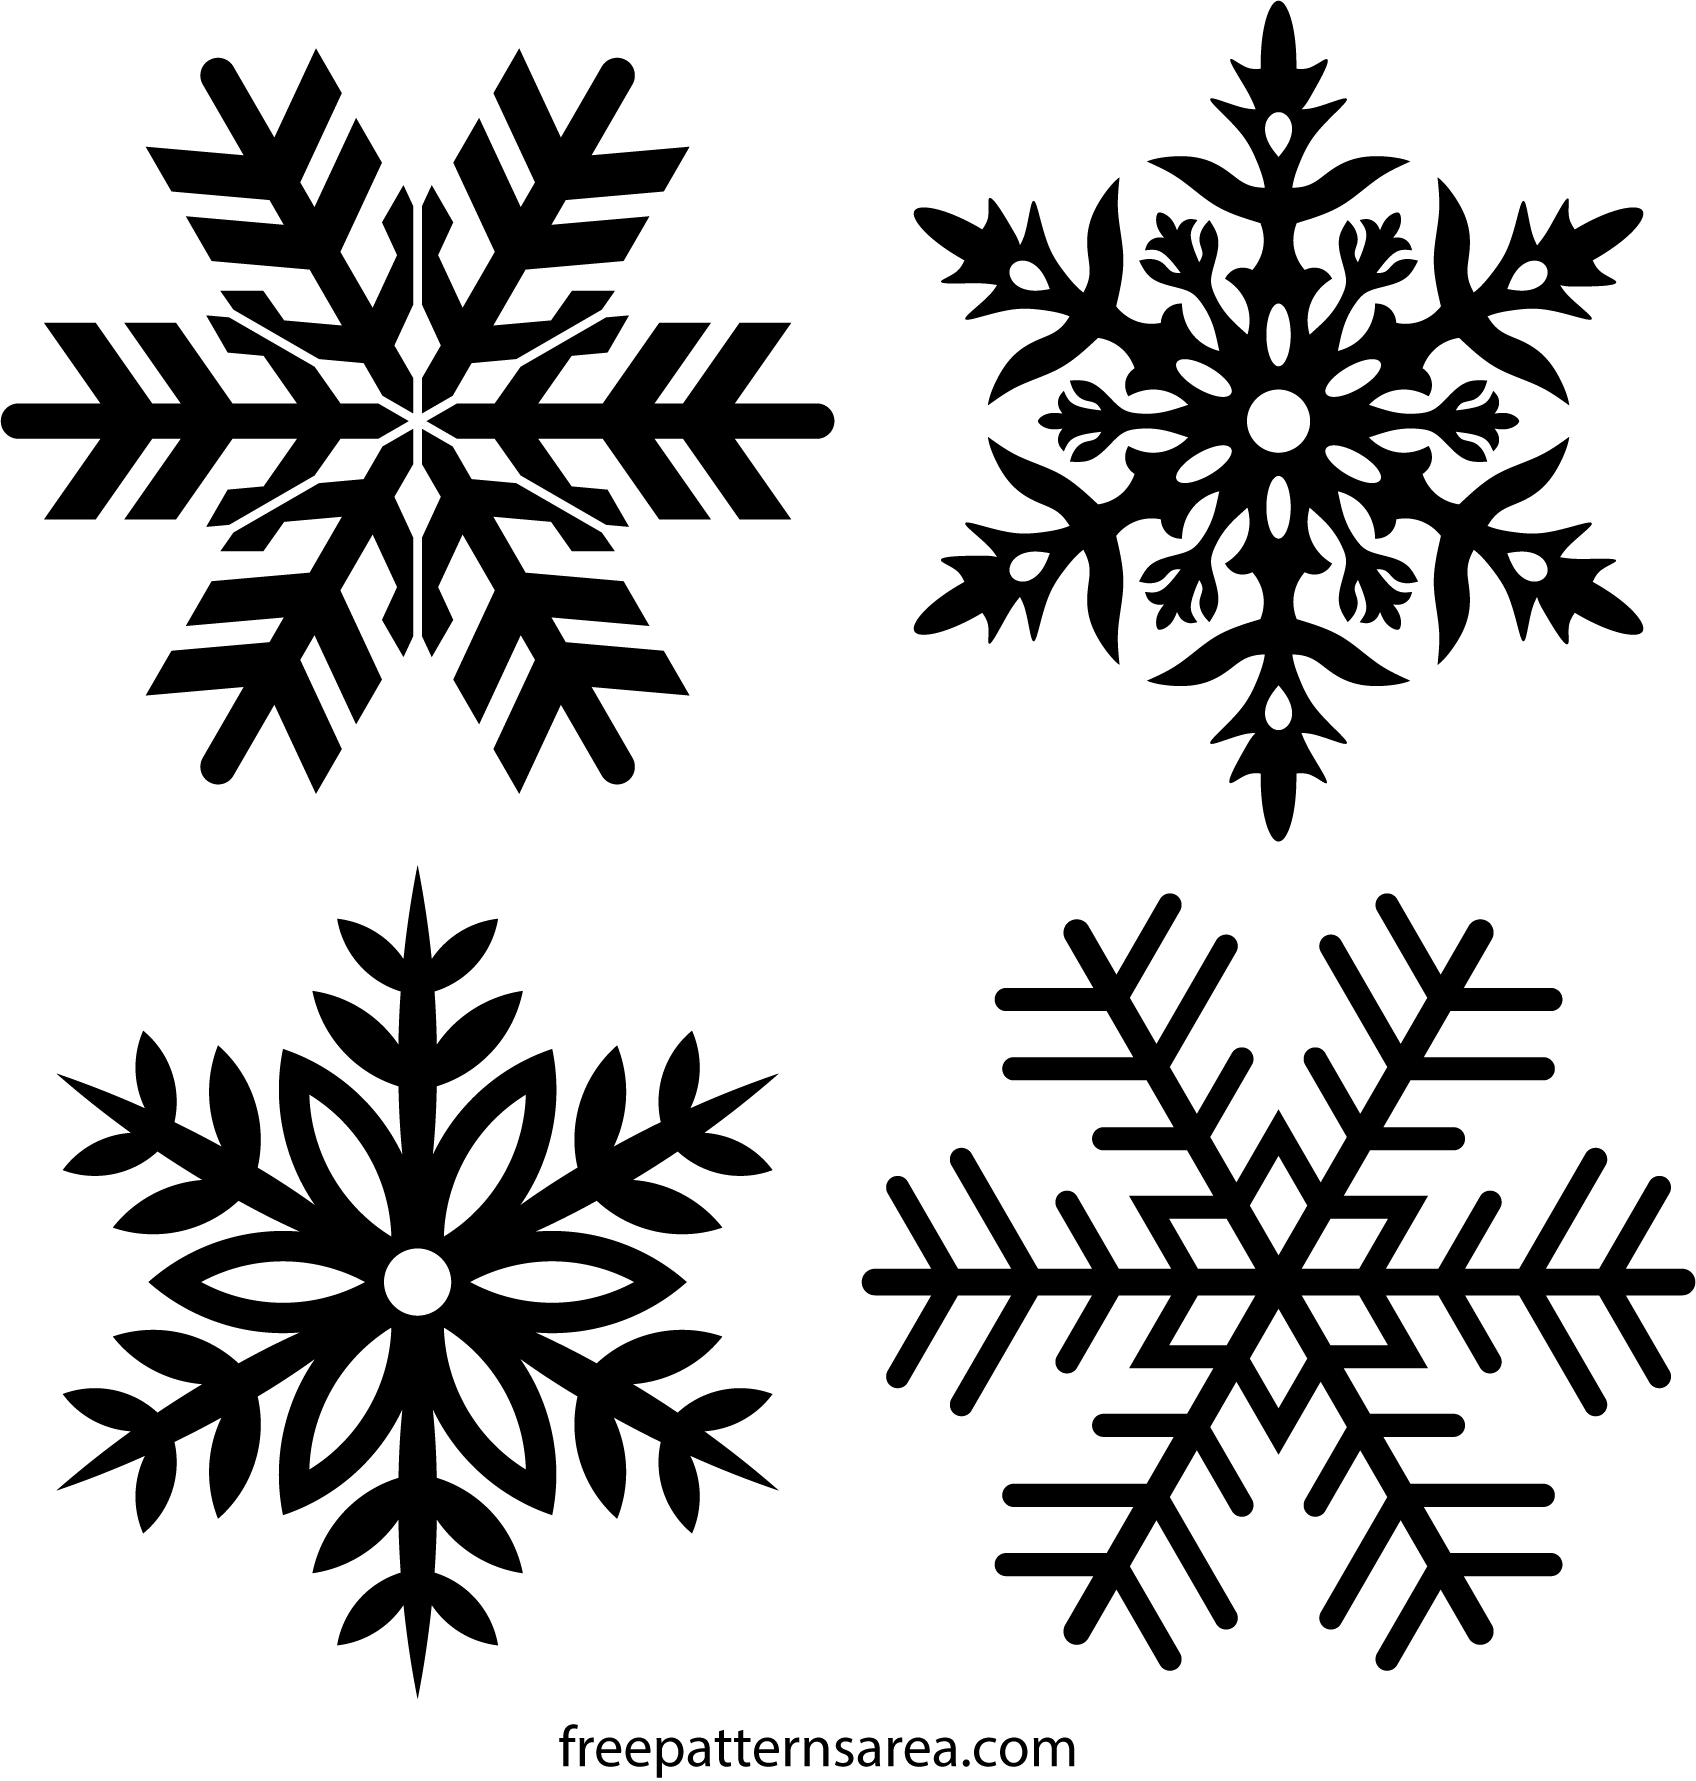 Free Snowflake Stencil Amp Clipart Vector Drawings